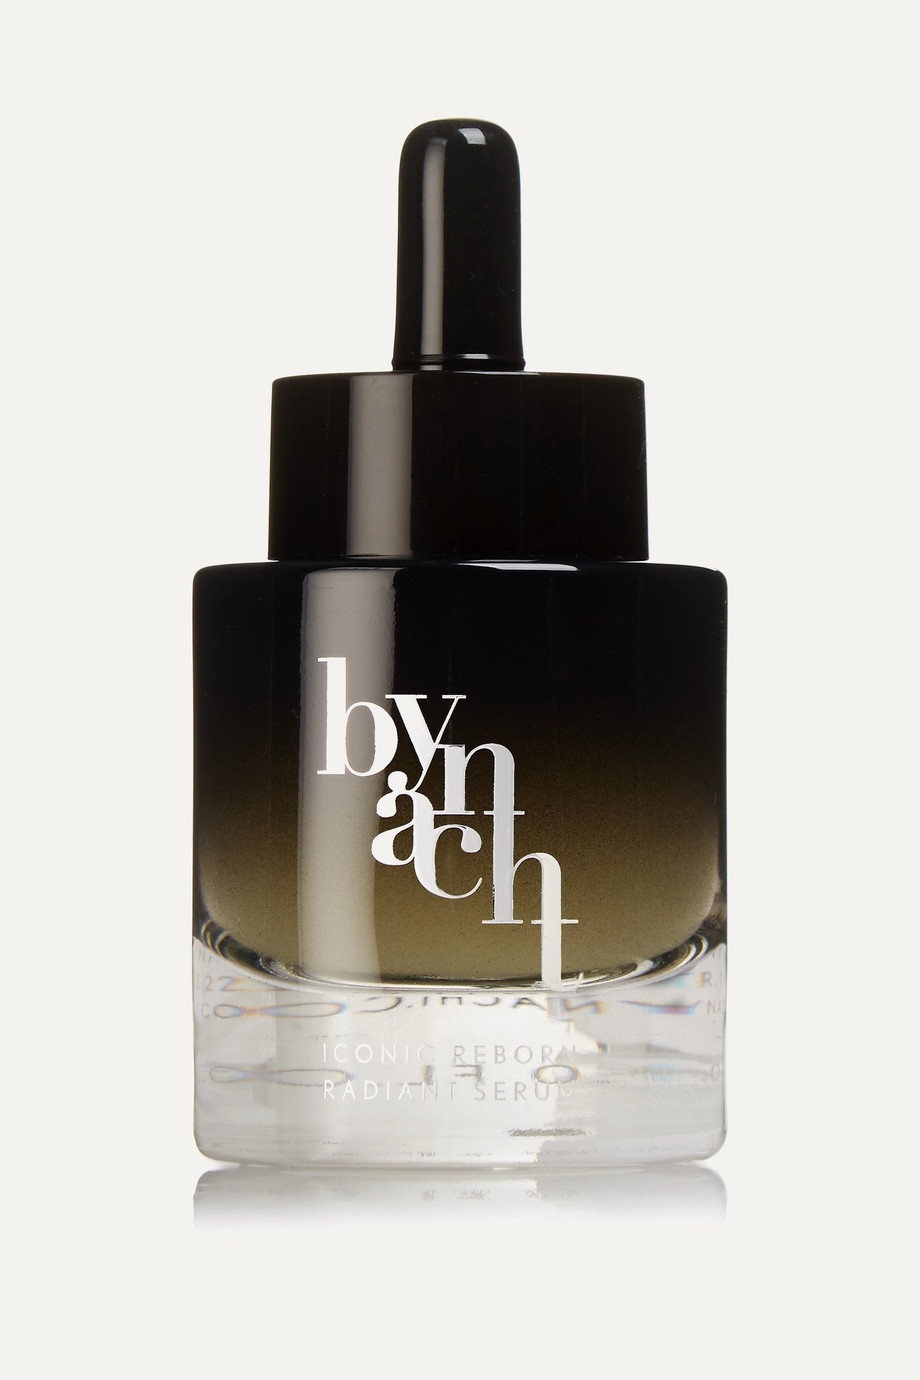 BYNACHT Iconic Reborn Radiant Serum, 30ml